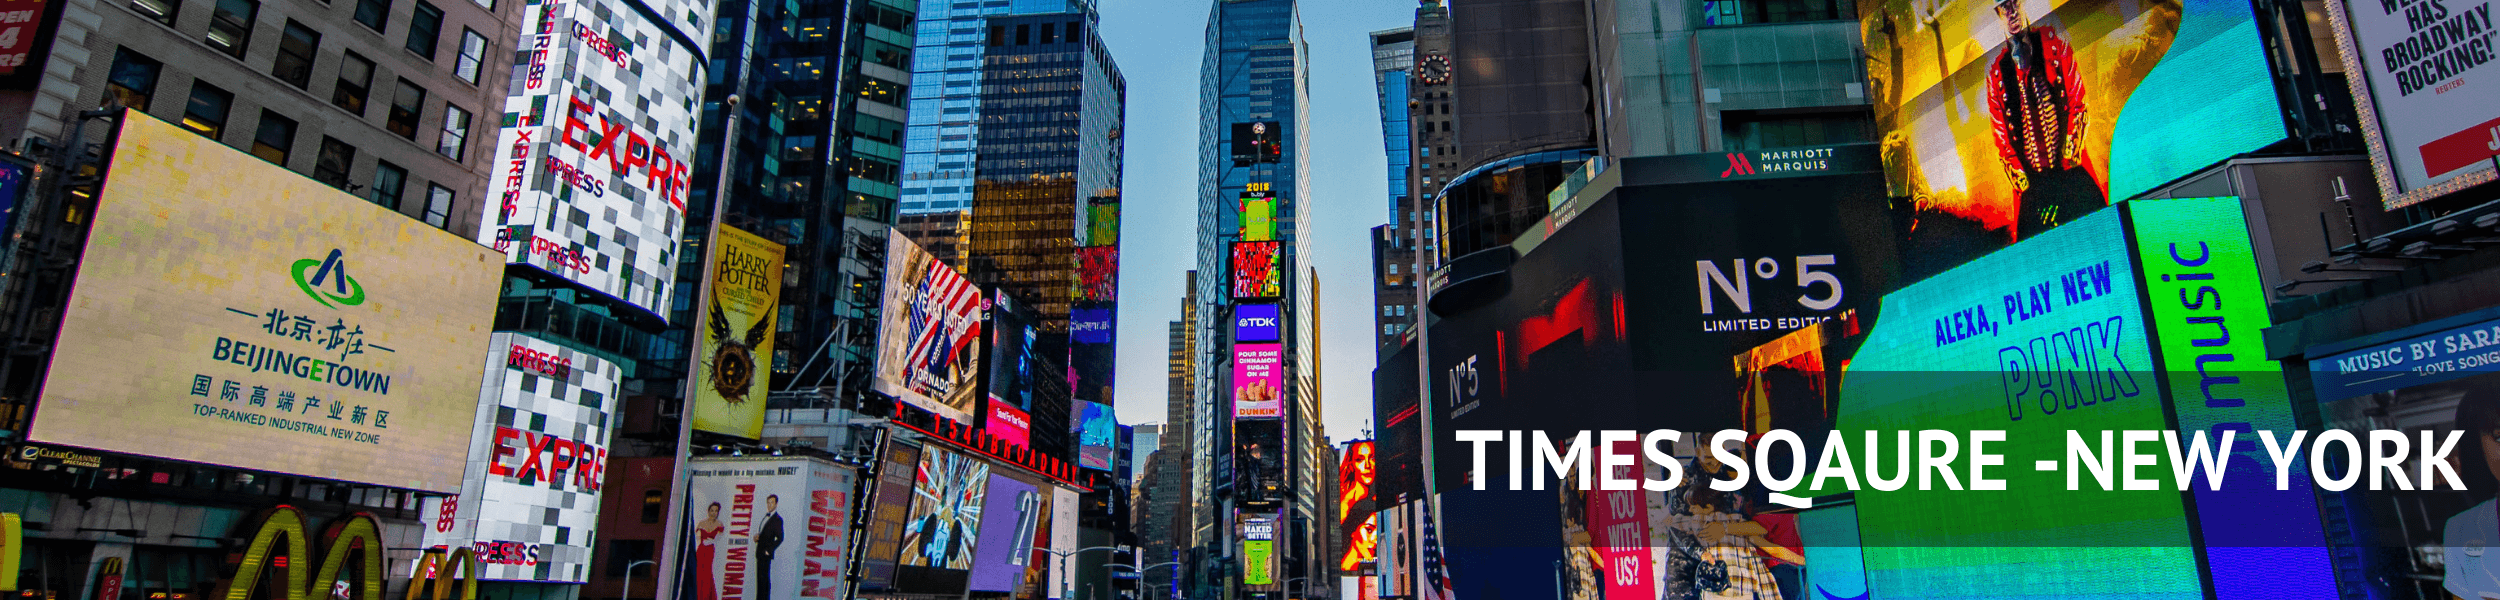 Times Square Survival Guide - Our guide to visiting Times Square NYC